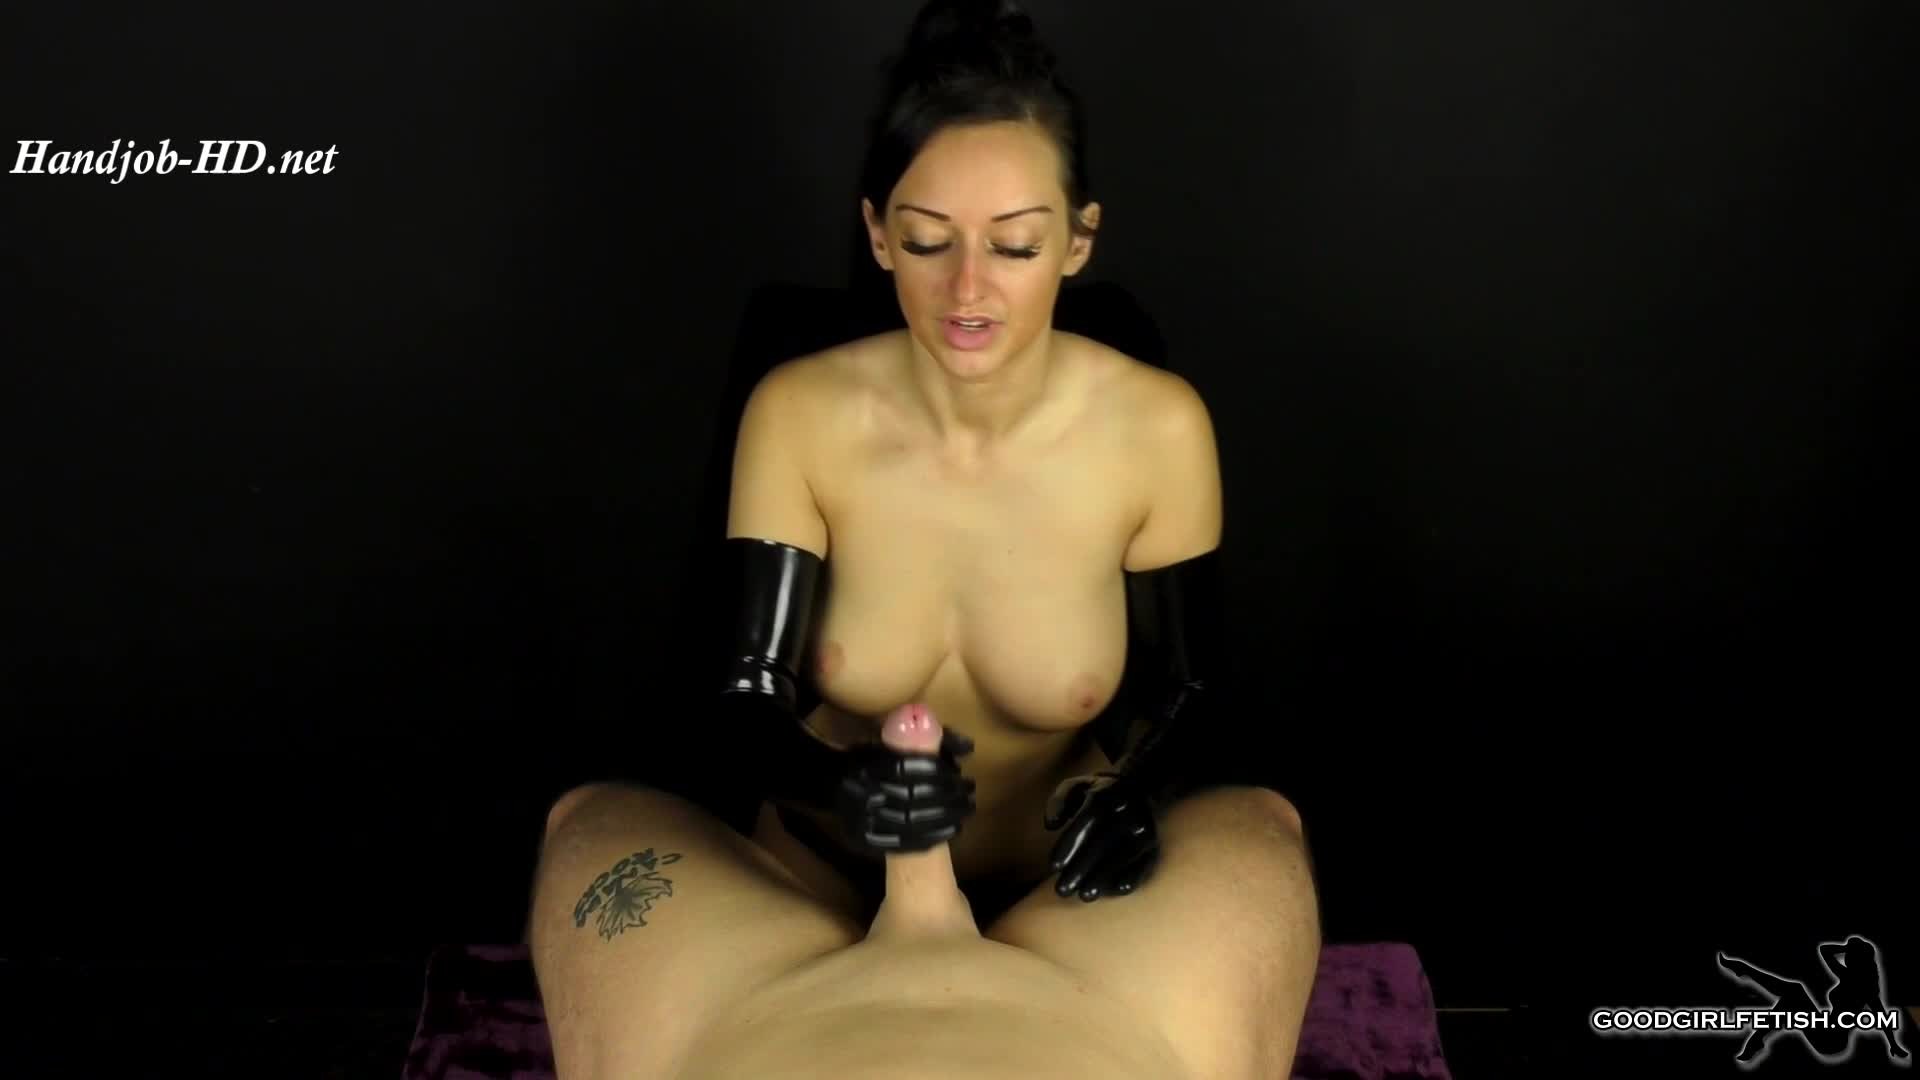 Long Latex Gloves Handjob